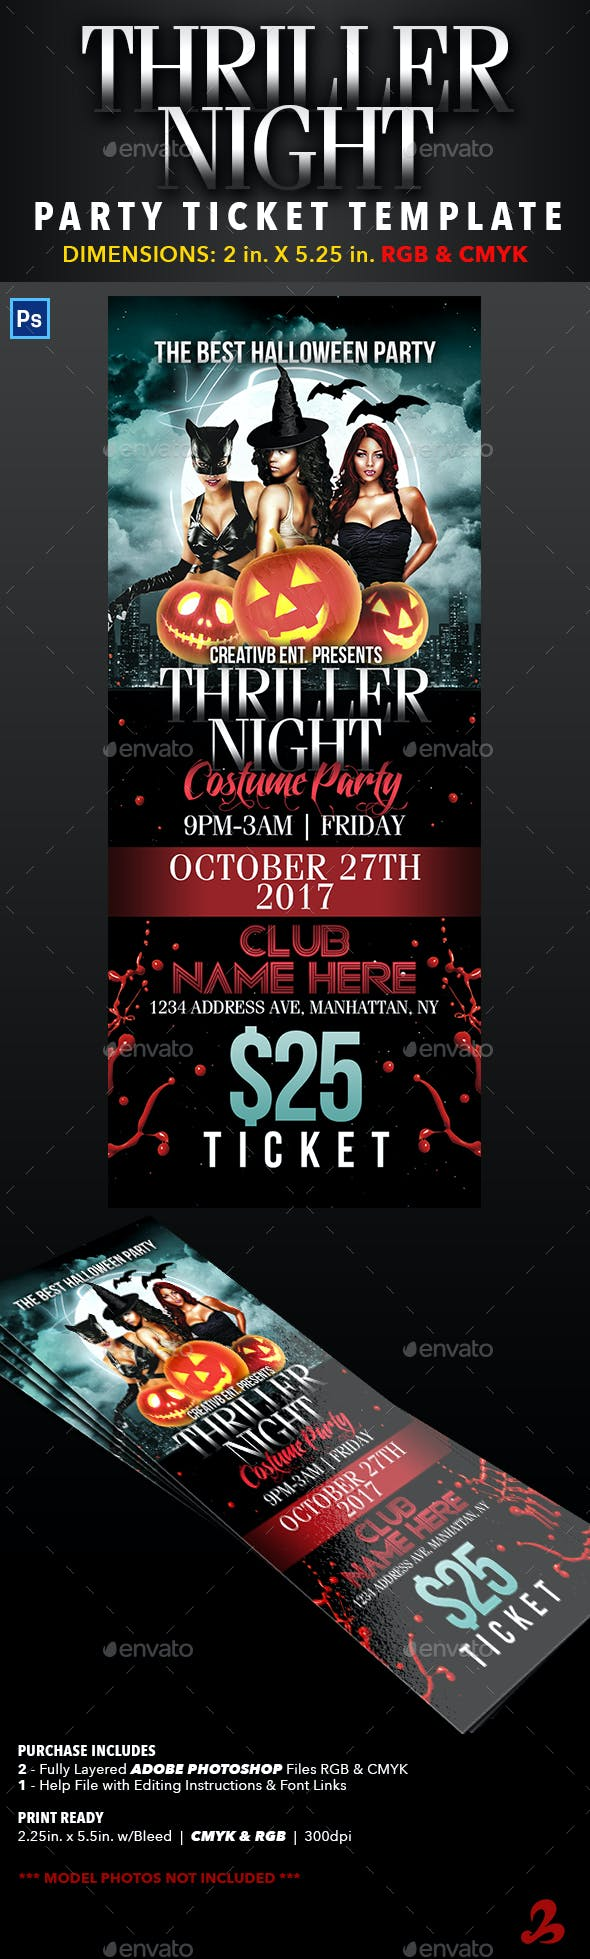 thriller night halloween party ticket template by creativb